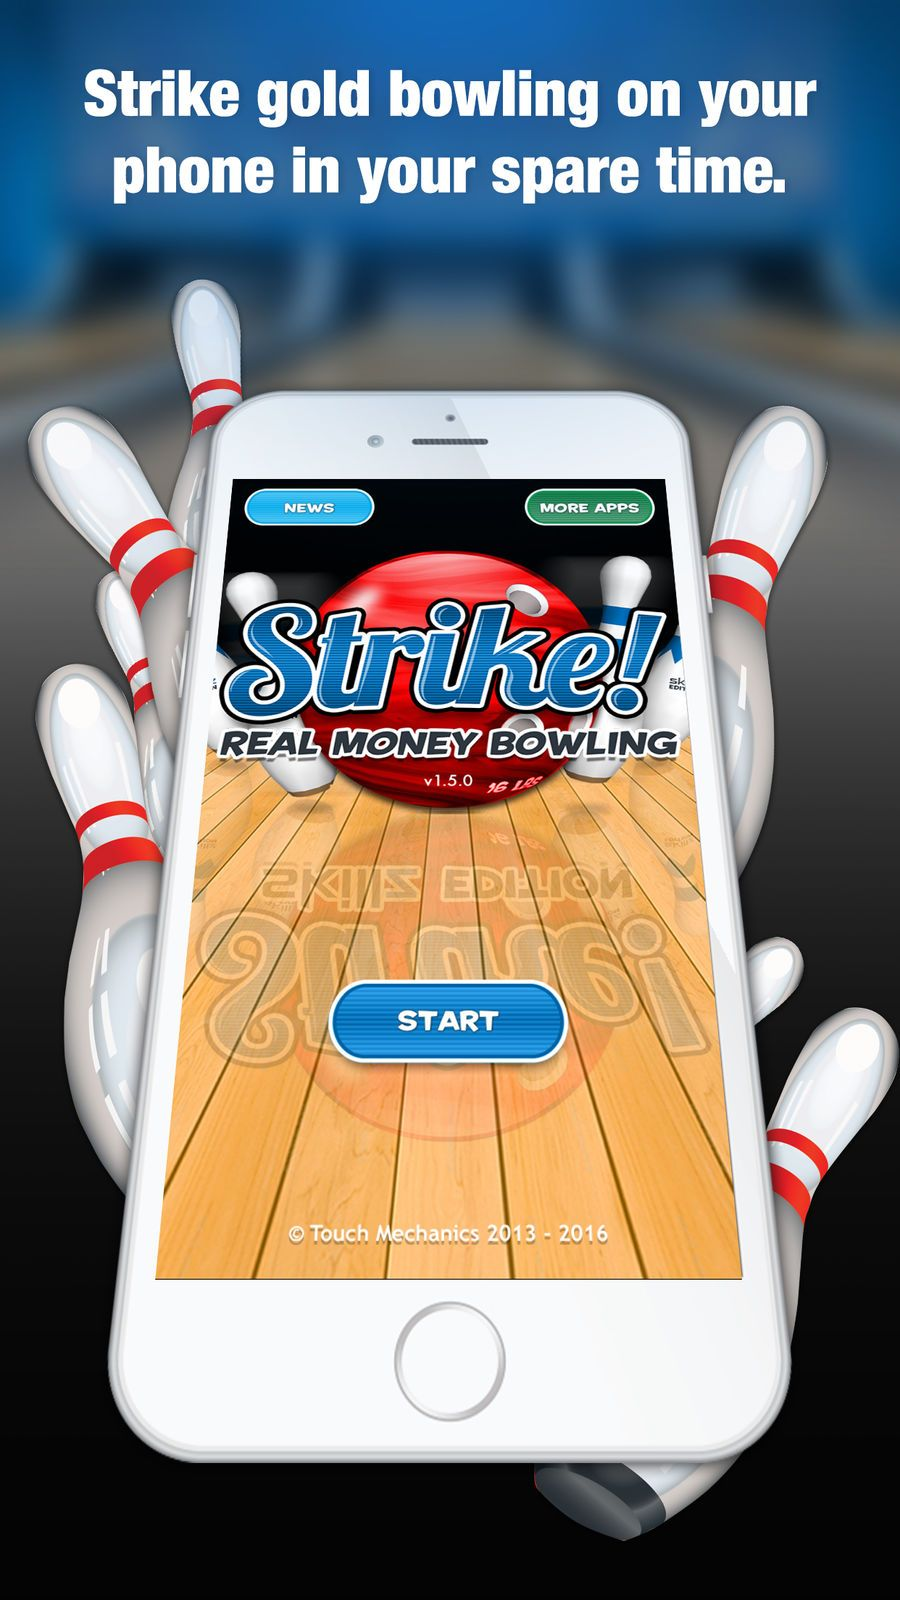 Strike! Real Money Bowling GamesMechanicsSportsios